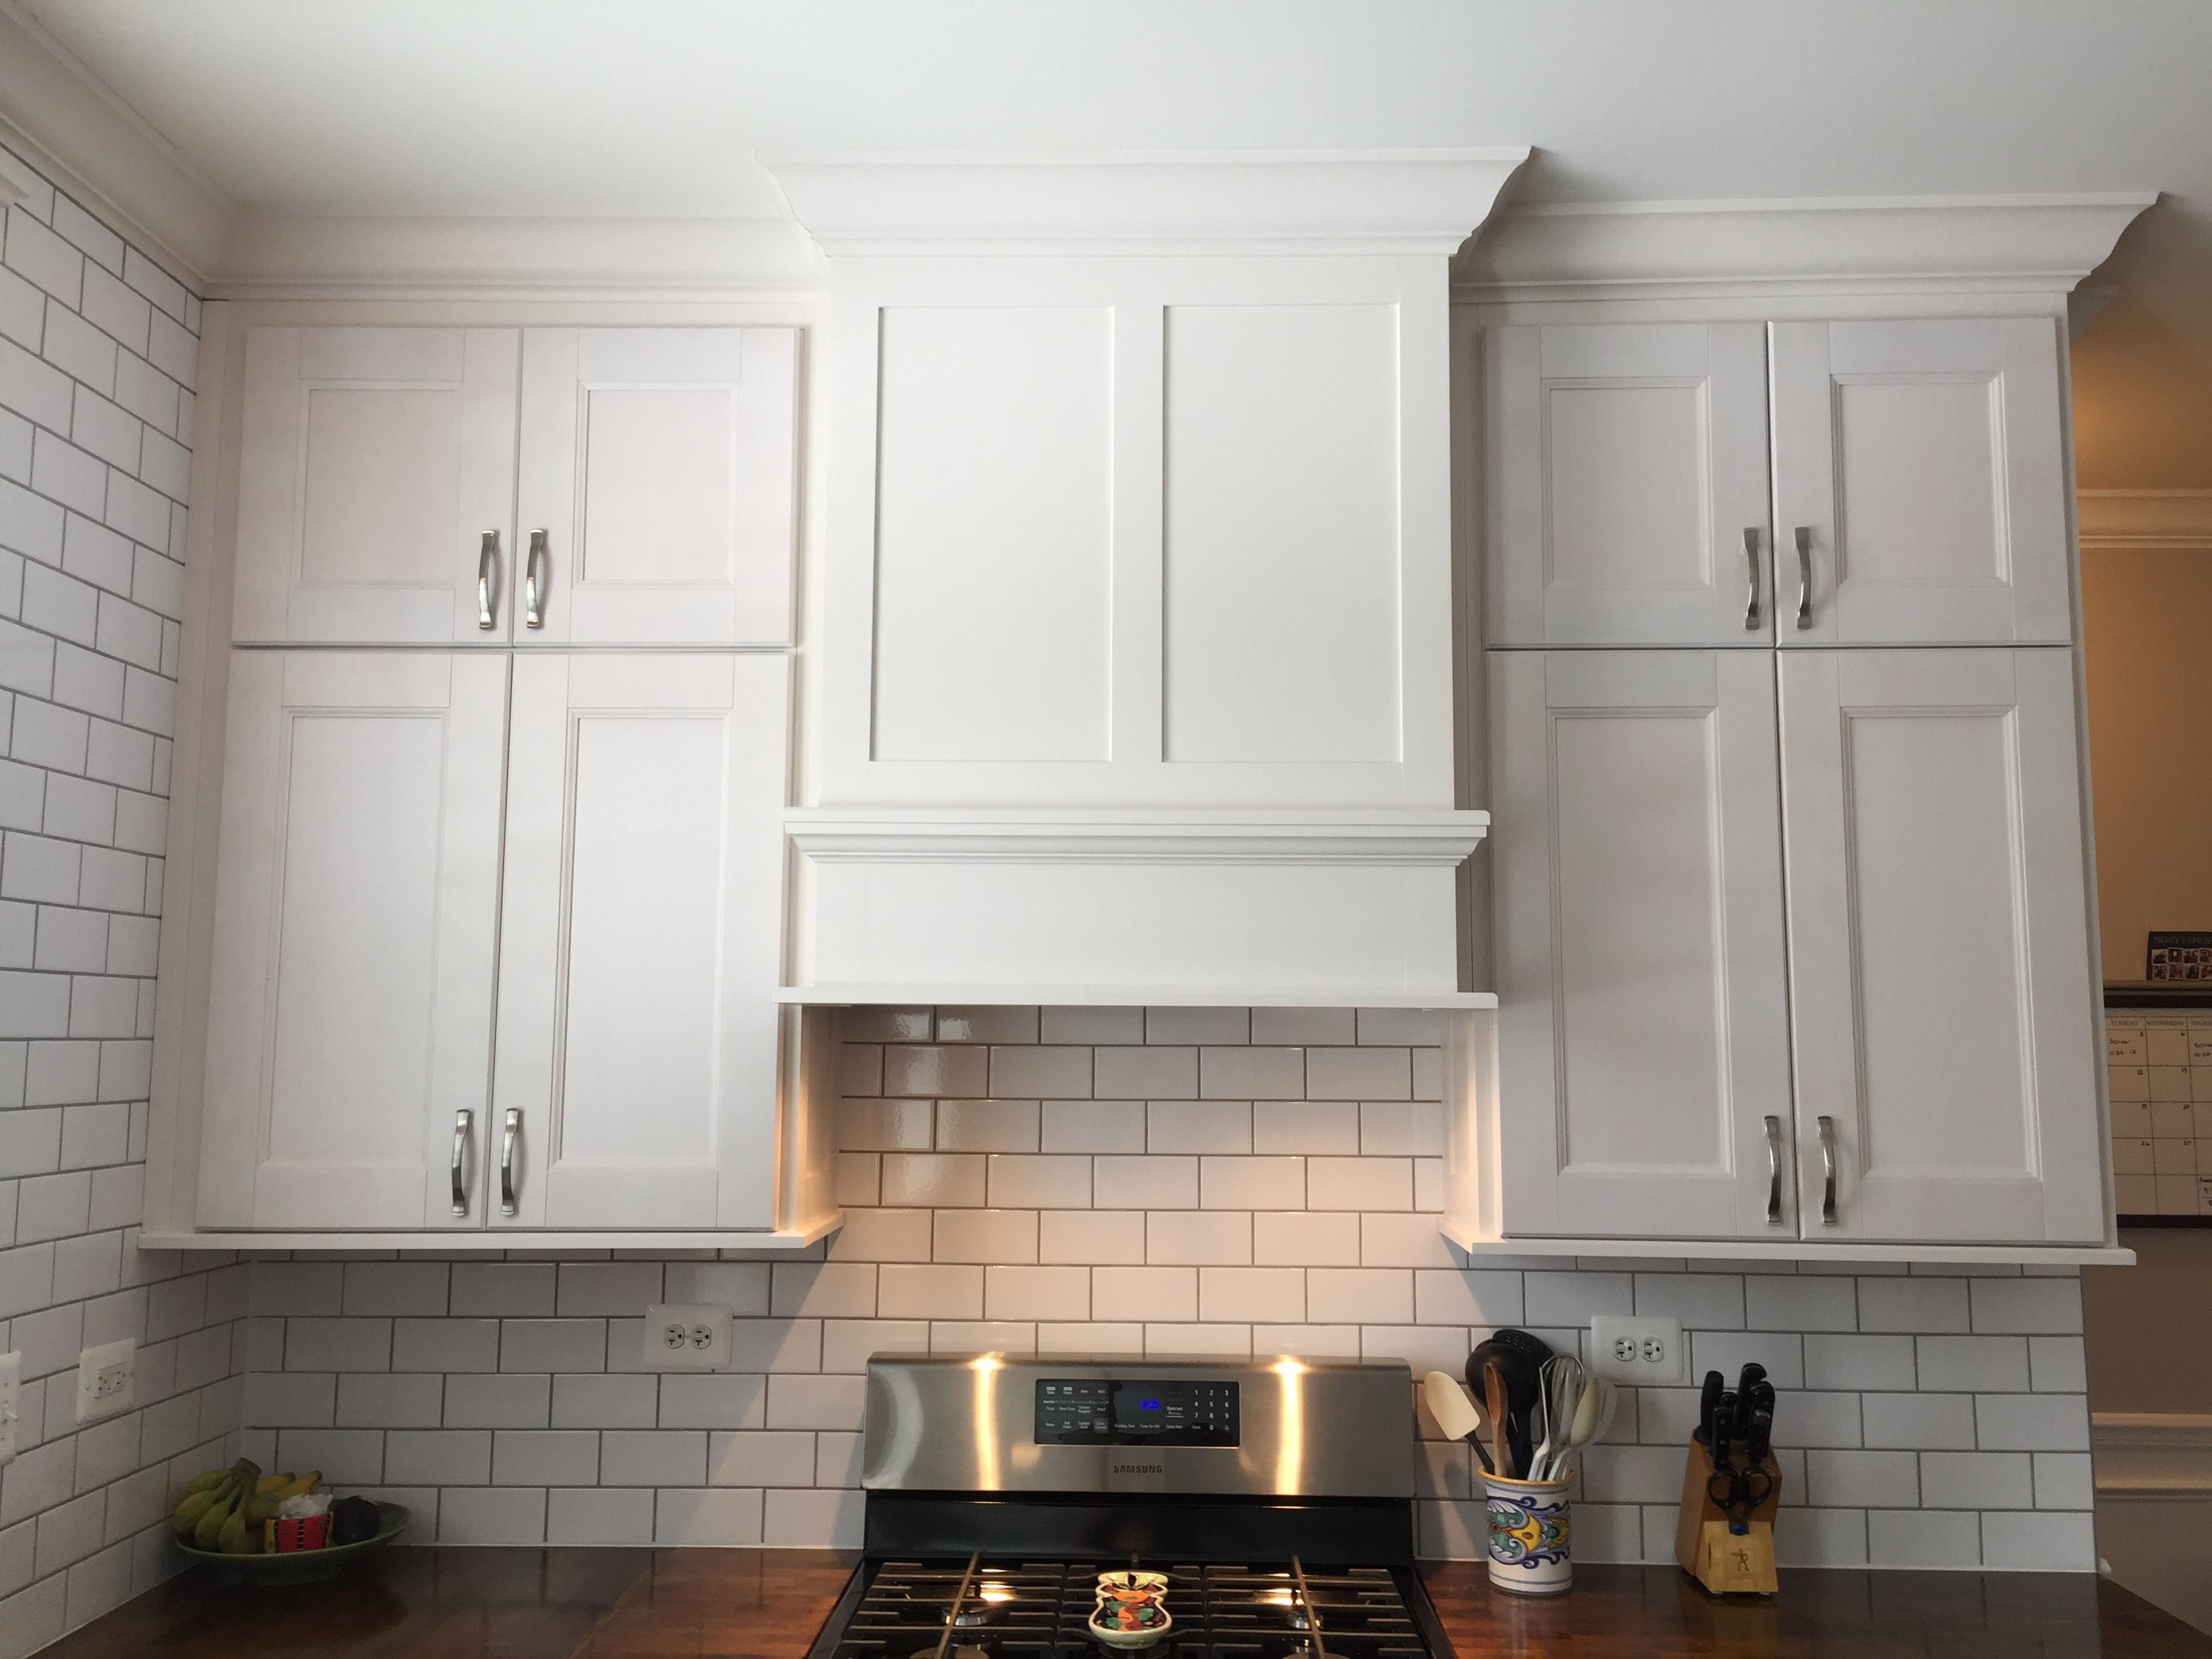 After Picture Of Kitchen With Butcher Block Counter Top Crown Molding White Upper Cabinets With Gra Kitchen Projects Butcher Block Countertops Upper Cabinets